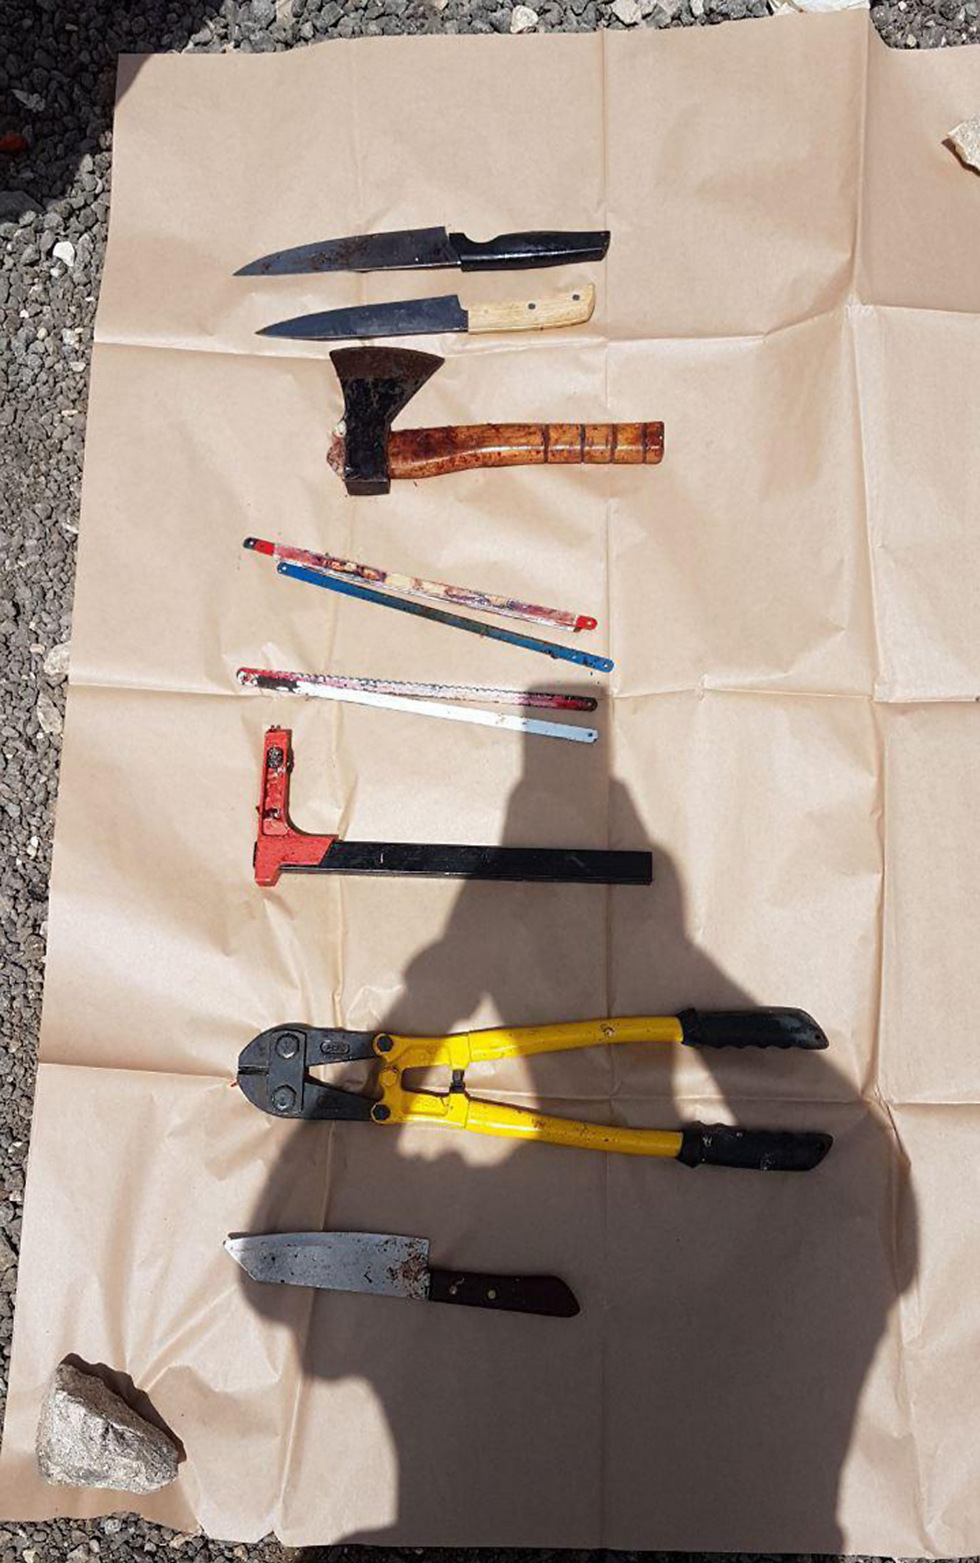 The tools found (Photo: Police Spokesperson)